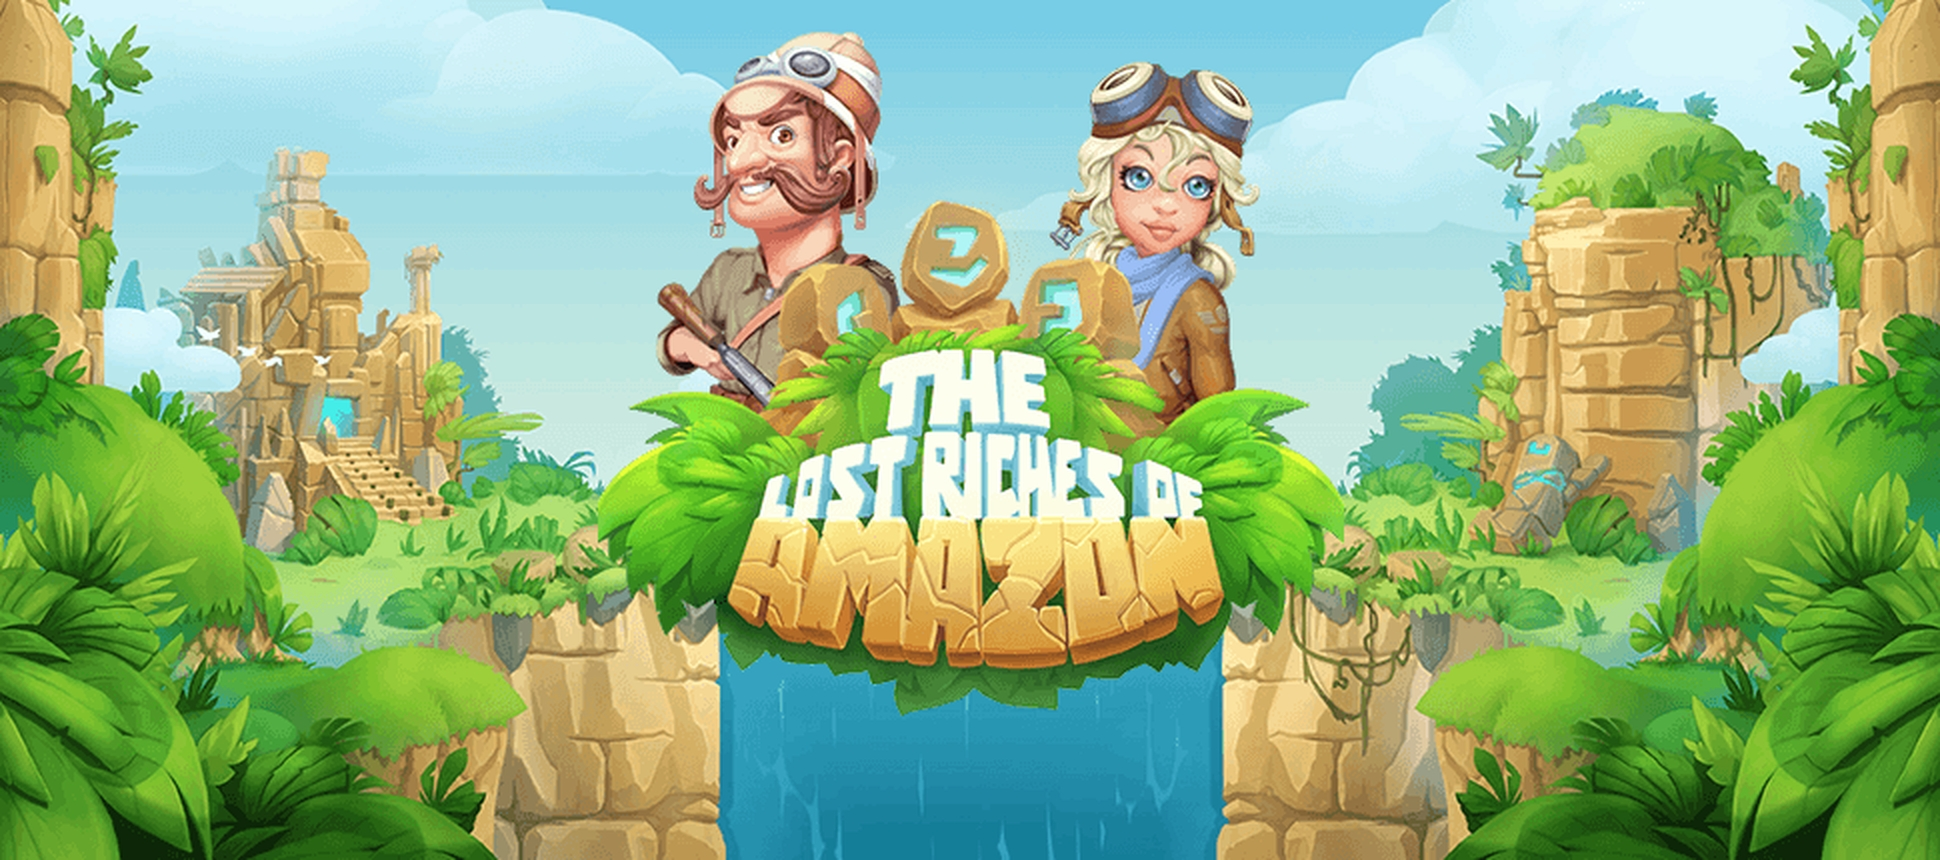 The The Lost Riches of Amazon Online Slot Demo Game by Foxium